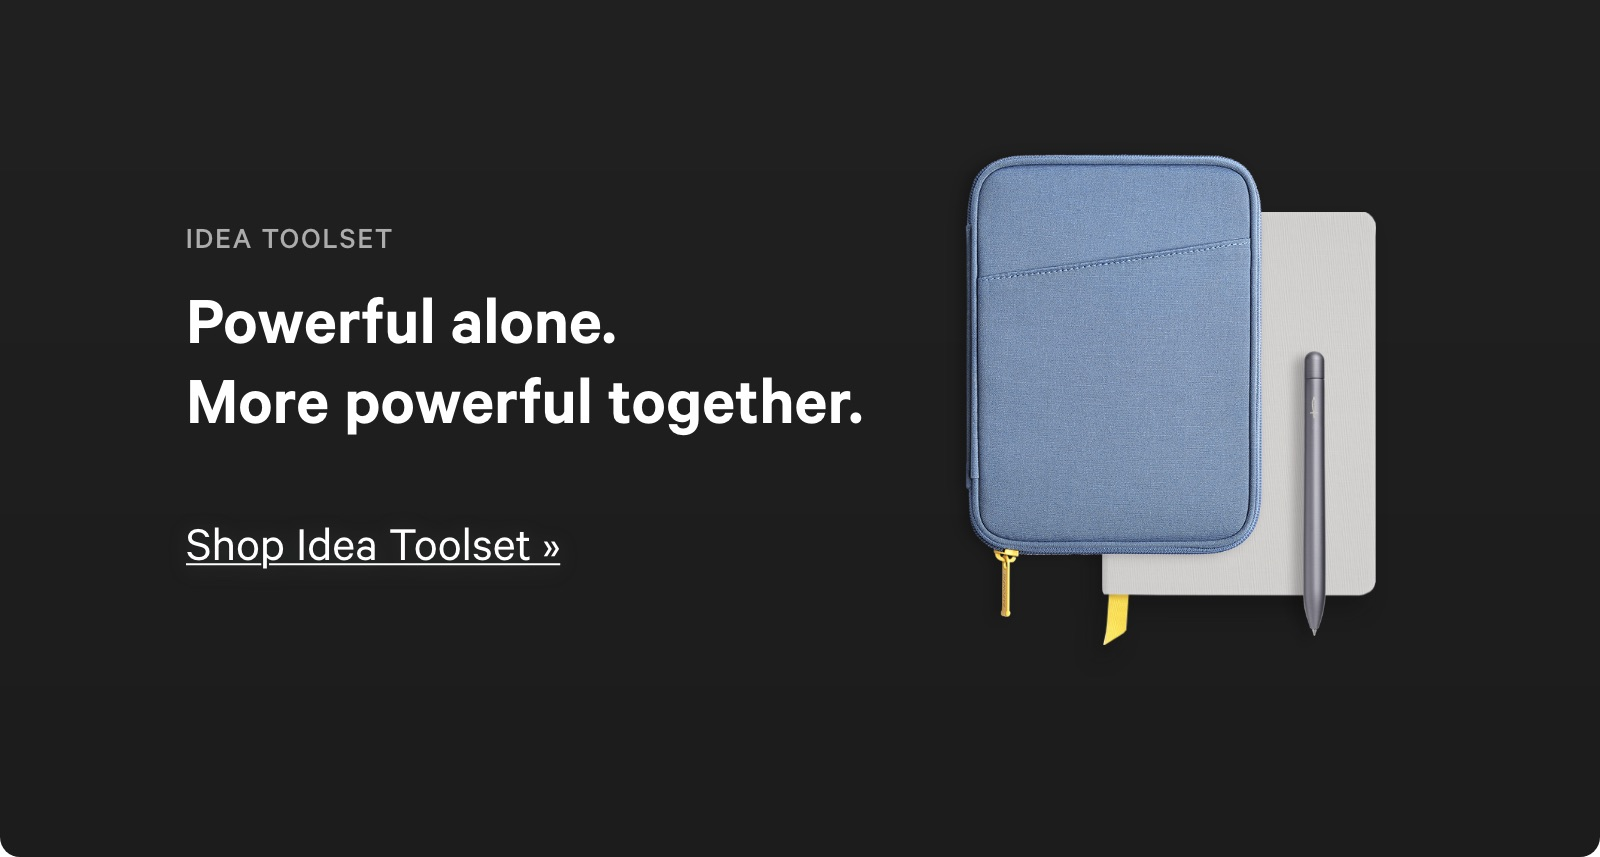 Powerful alone. More powerful together. Shop Idea Toolset ?